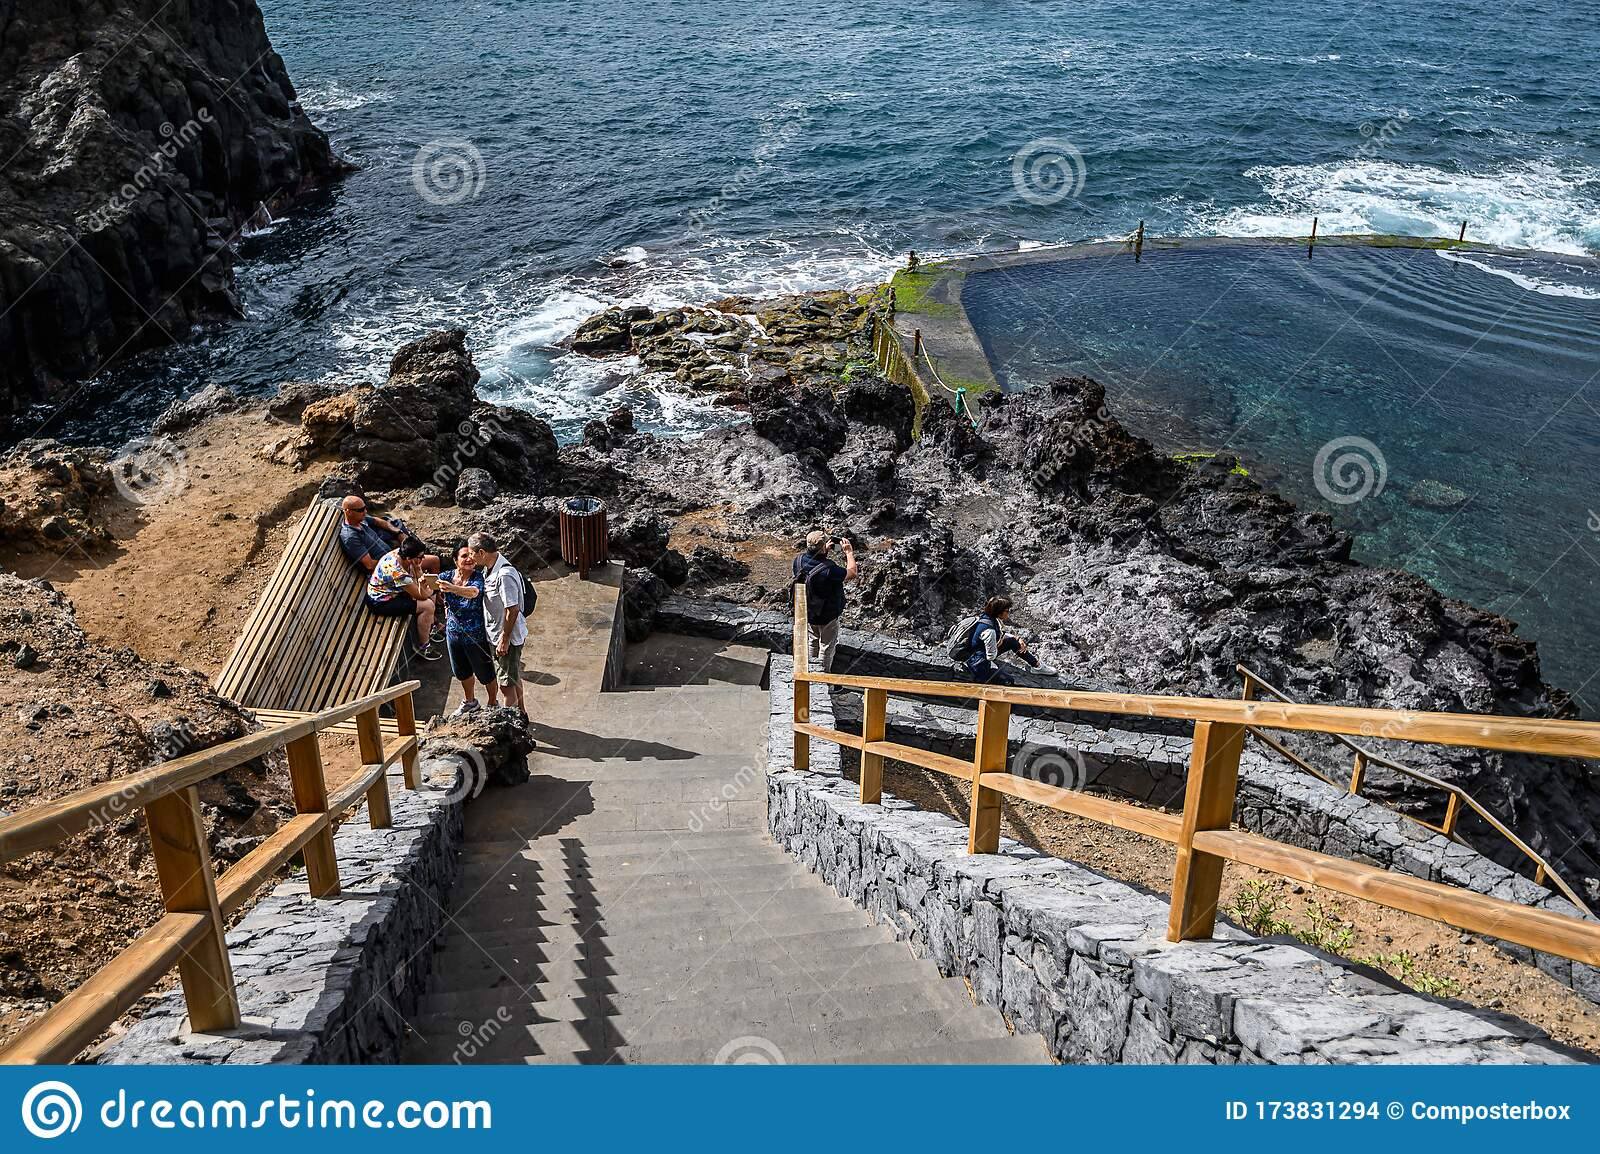 An Abandoned Outdoor Pool With Ocean Water On A Volcanic Coast Selective Focus 20 01 2020 Los Gigantes Tenerife Editorial Stock Image Image Of Rock Scenery 173831294